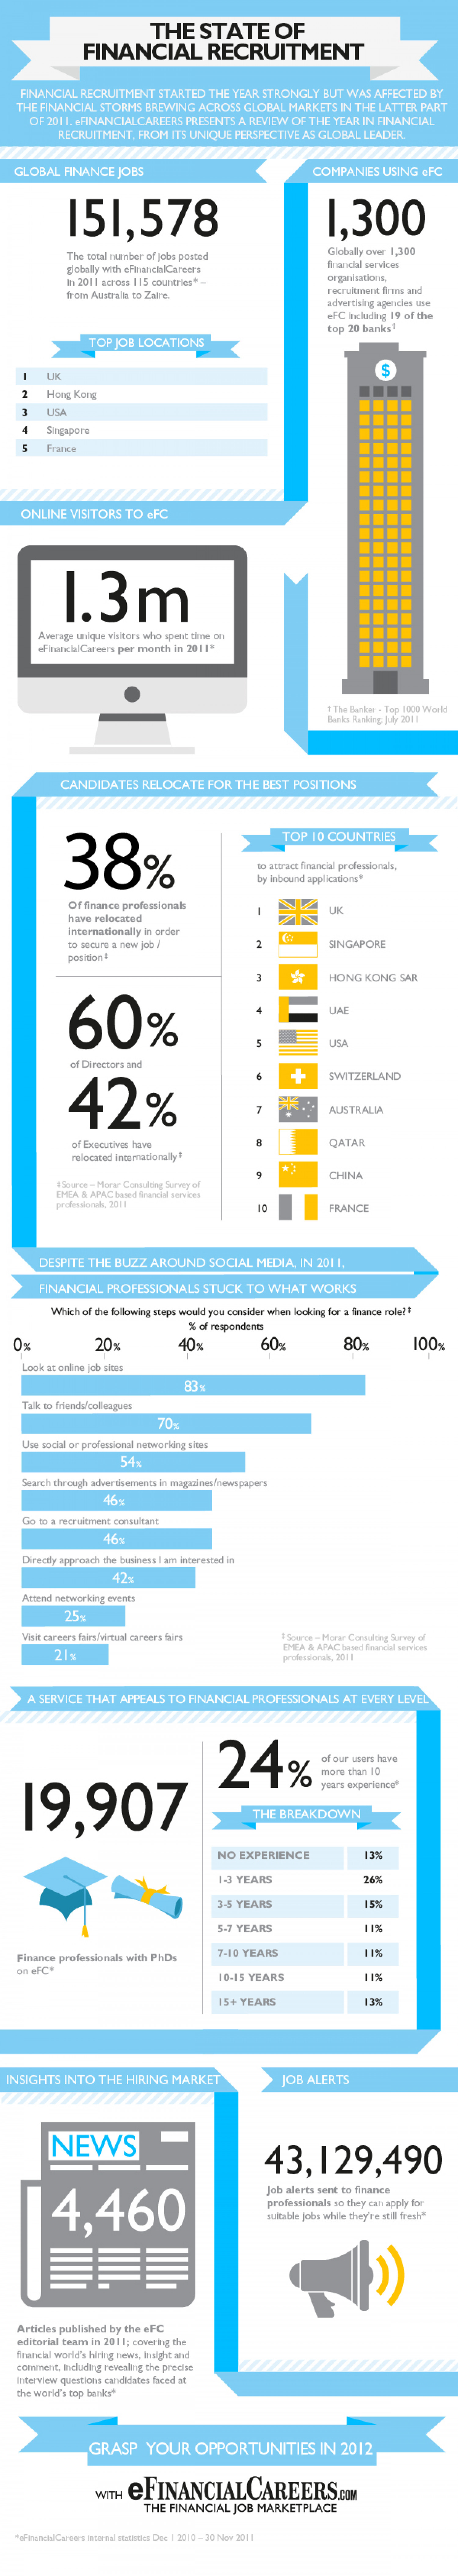 The State of Financial Recruitment Infographic